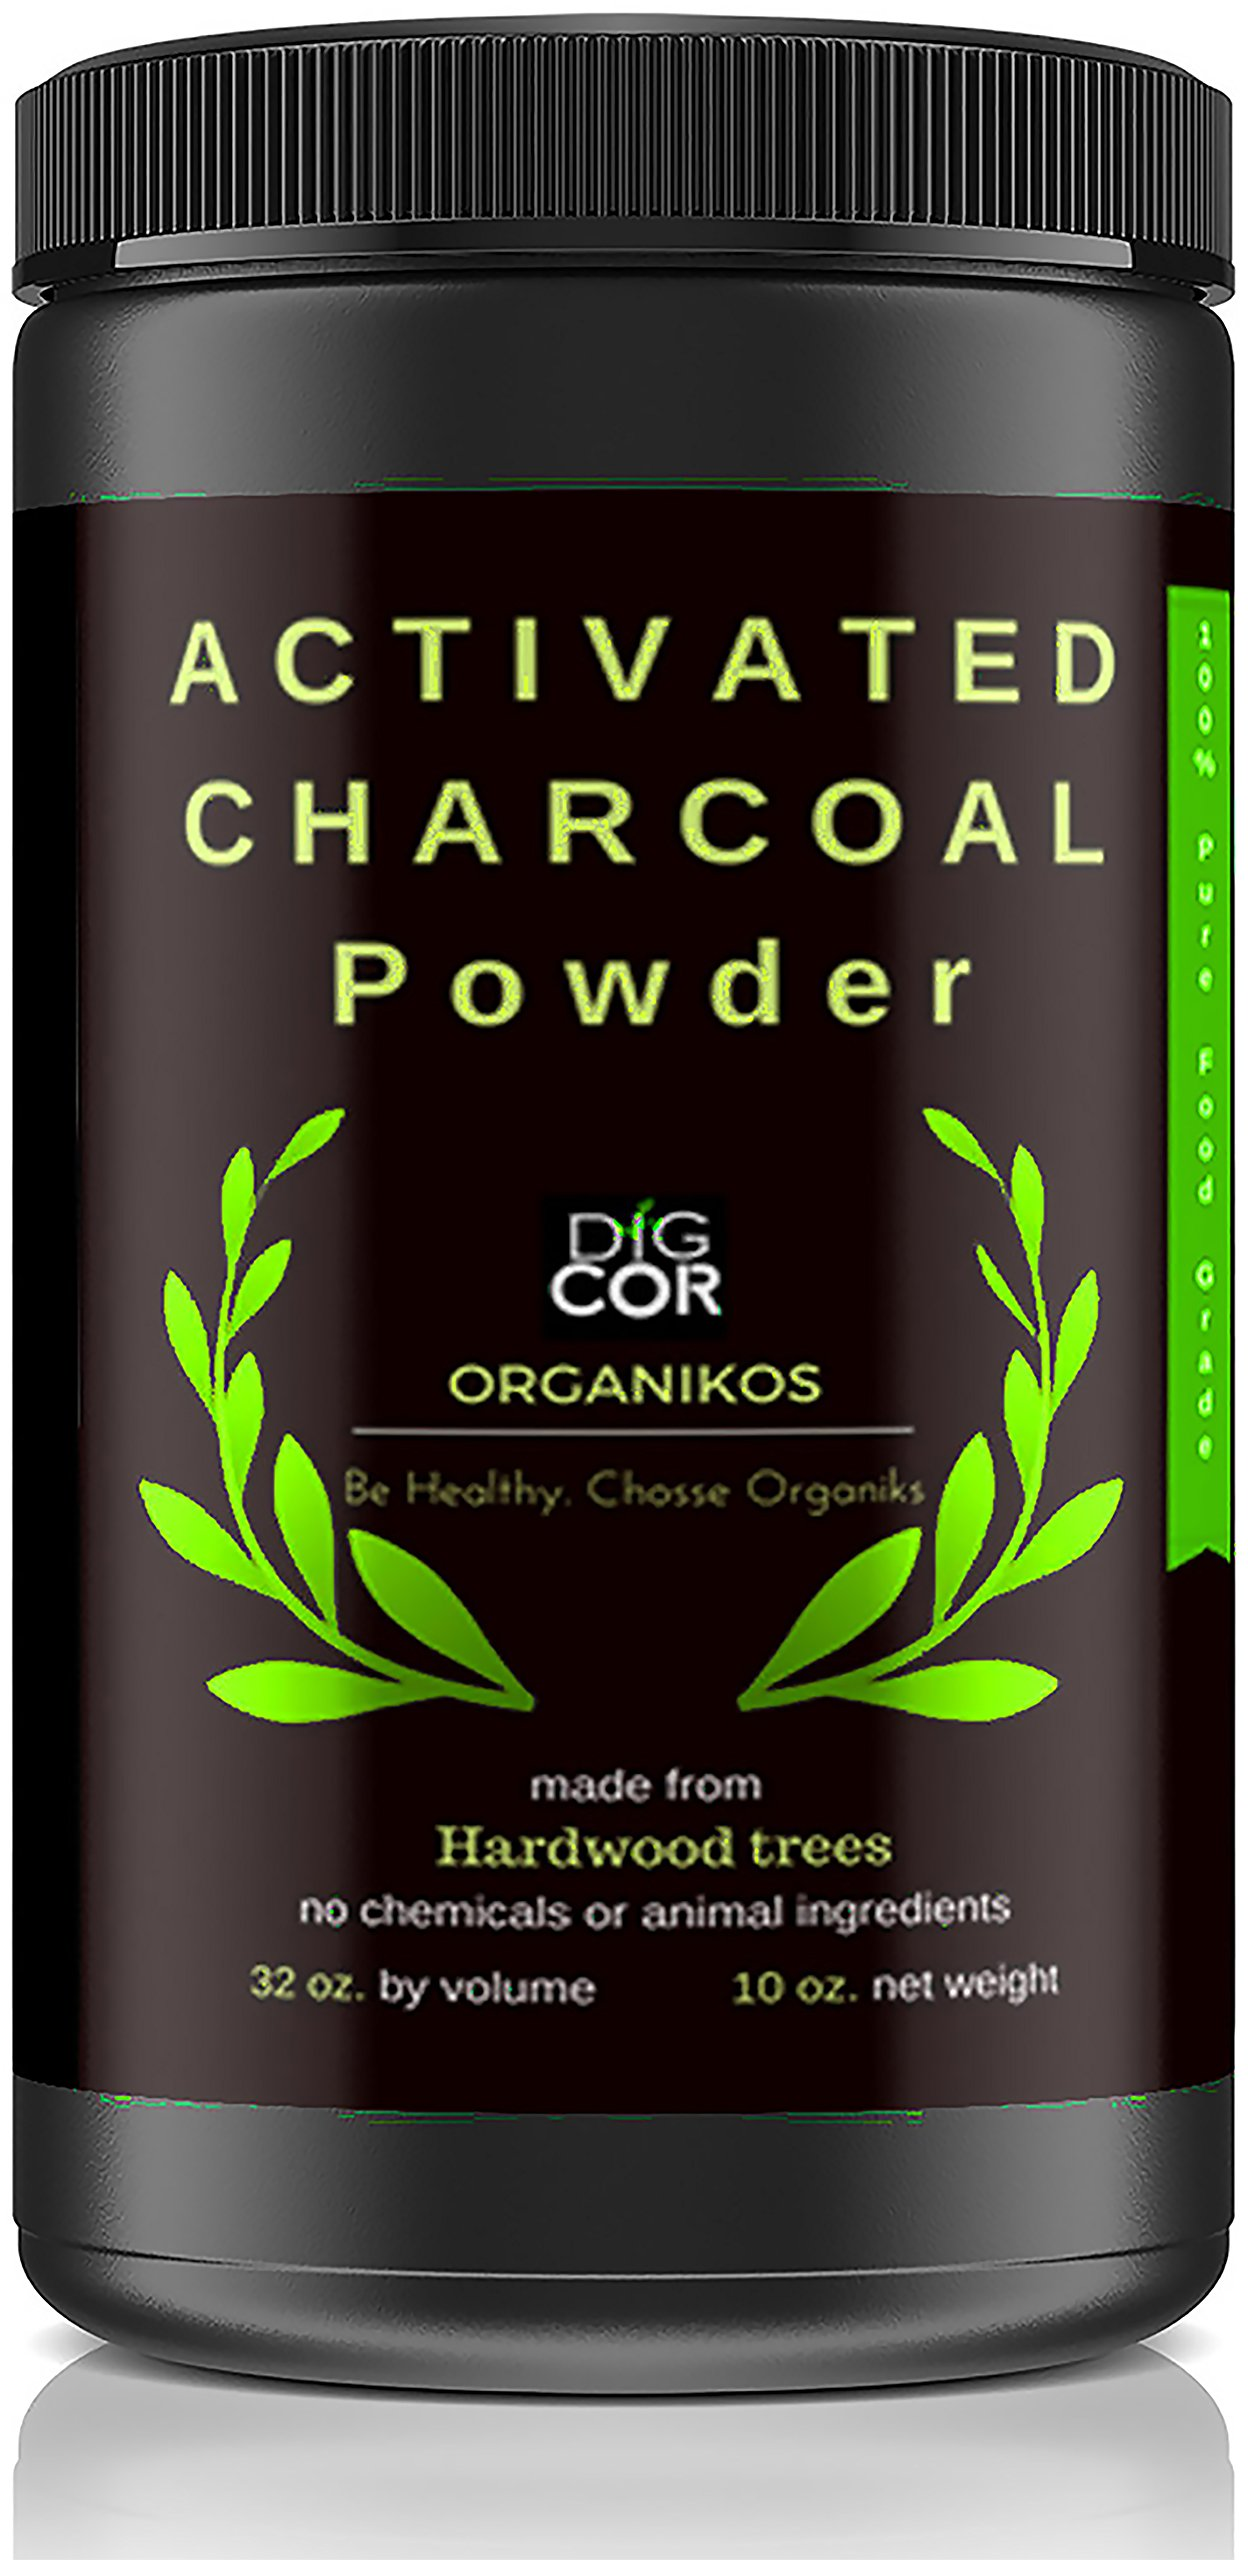 Activated Charcoal Powder by DIGCOR Organikos : Large Jar Natural Hardwood Charcoal Powder, Pure Food-Grade, USA-Made Charcoal Teeth Powder, Detox Face Mask, Digestive System + E-Book